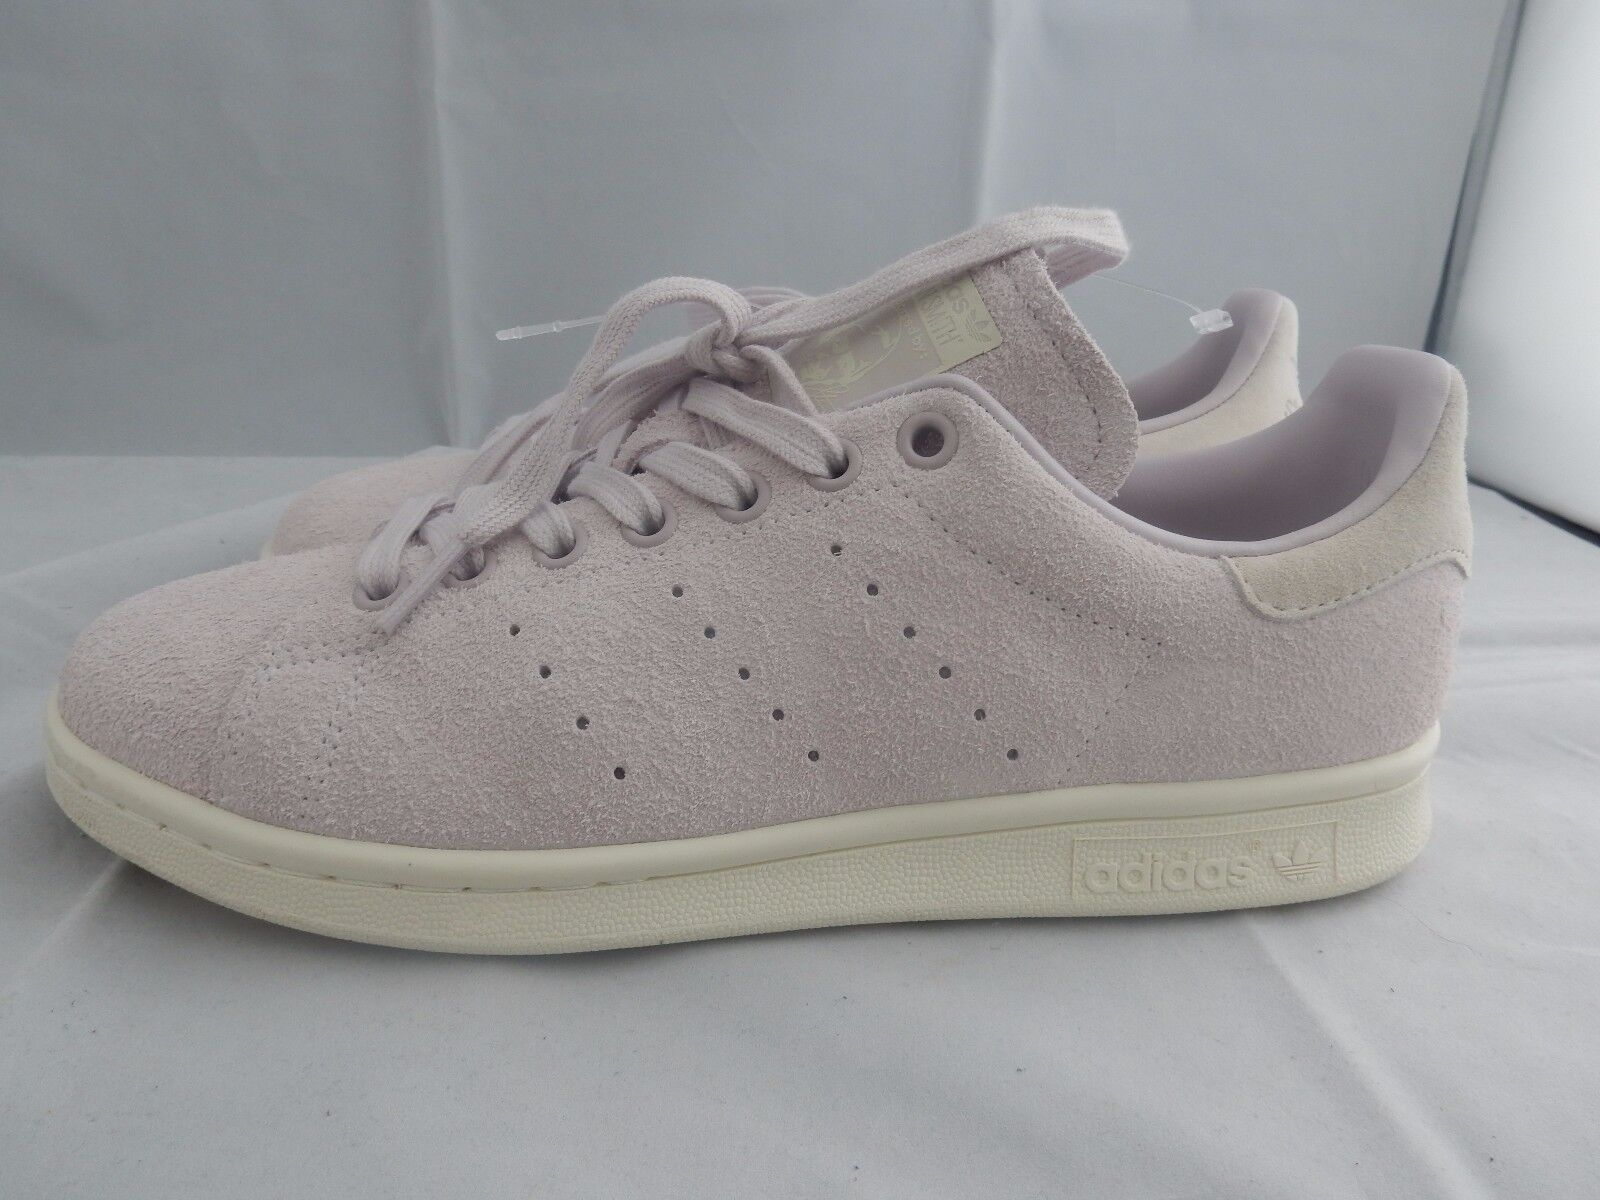 ADIDAS STAN SMITH  CLEARANCE  LILAC EUR Femme TRAINERS6 US 7.5 EUR LILAC 39.1/3 8ba450